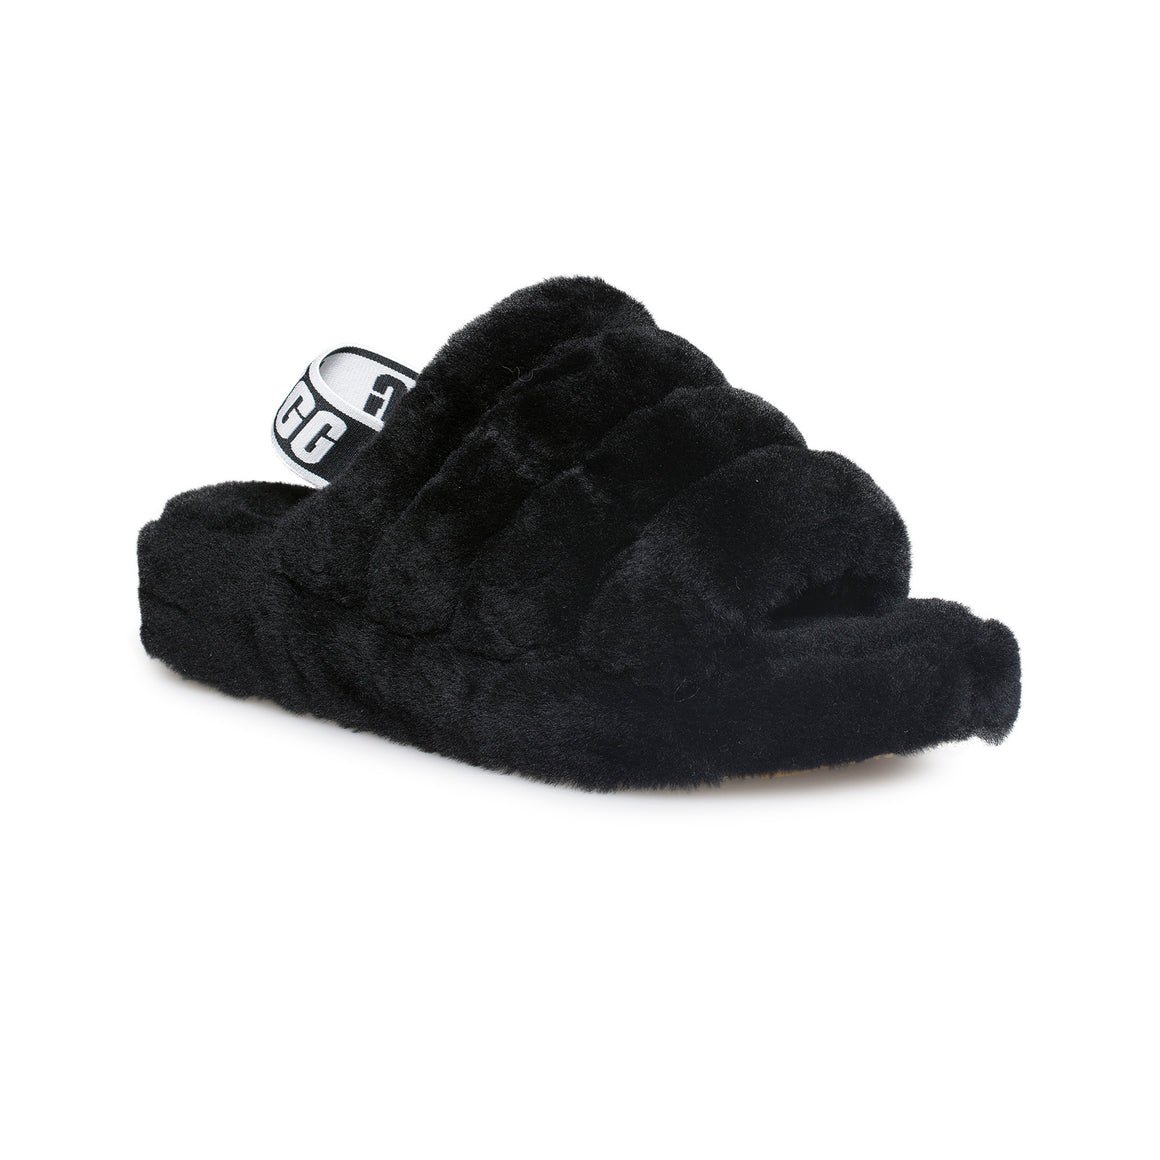 UGG Fluff Yeah Slide Black Slippers - Women's